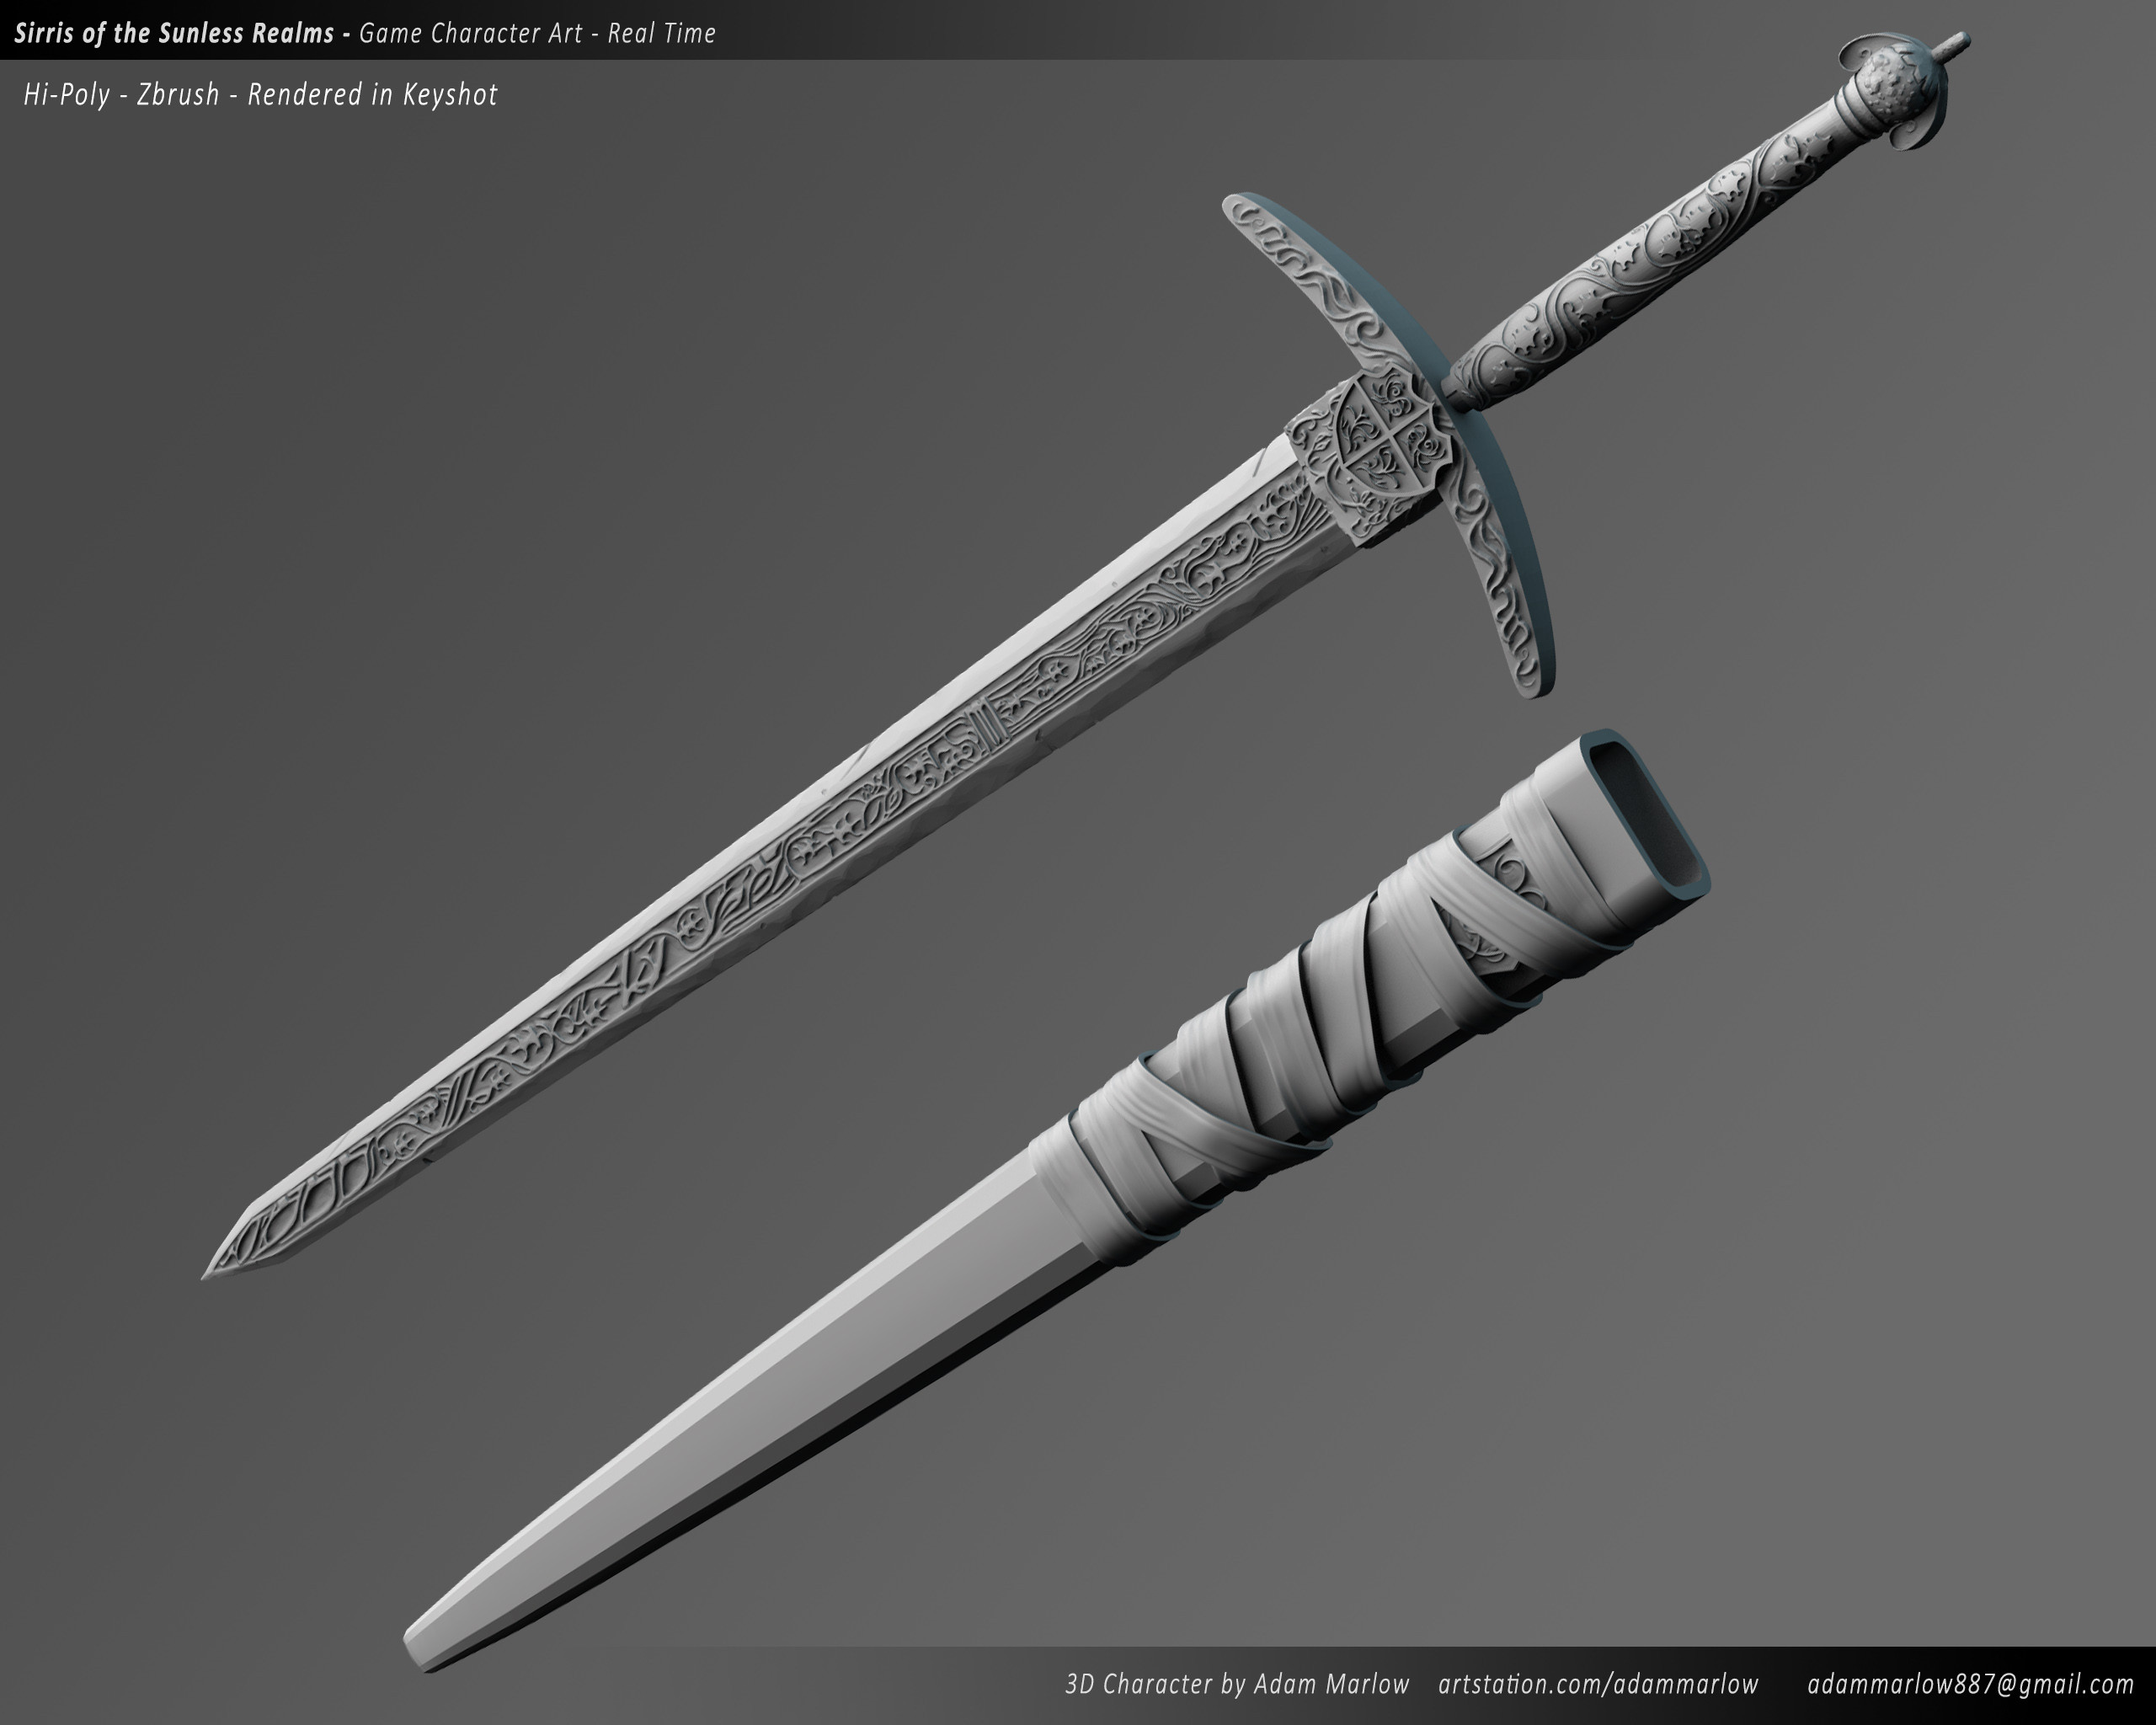 Sword Clay render from Keyshot - Made in Zbrush